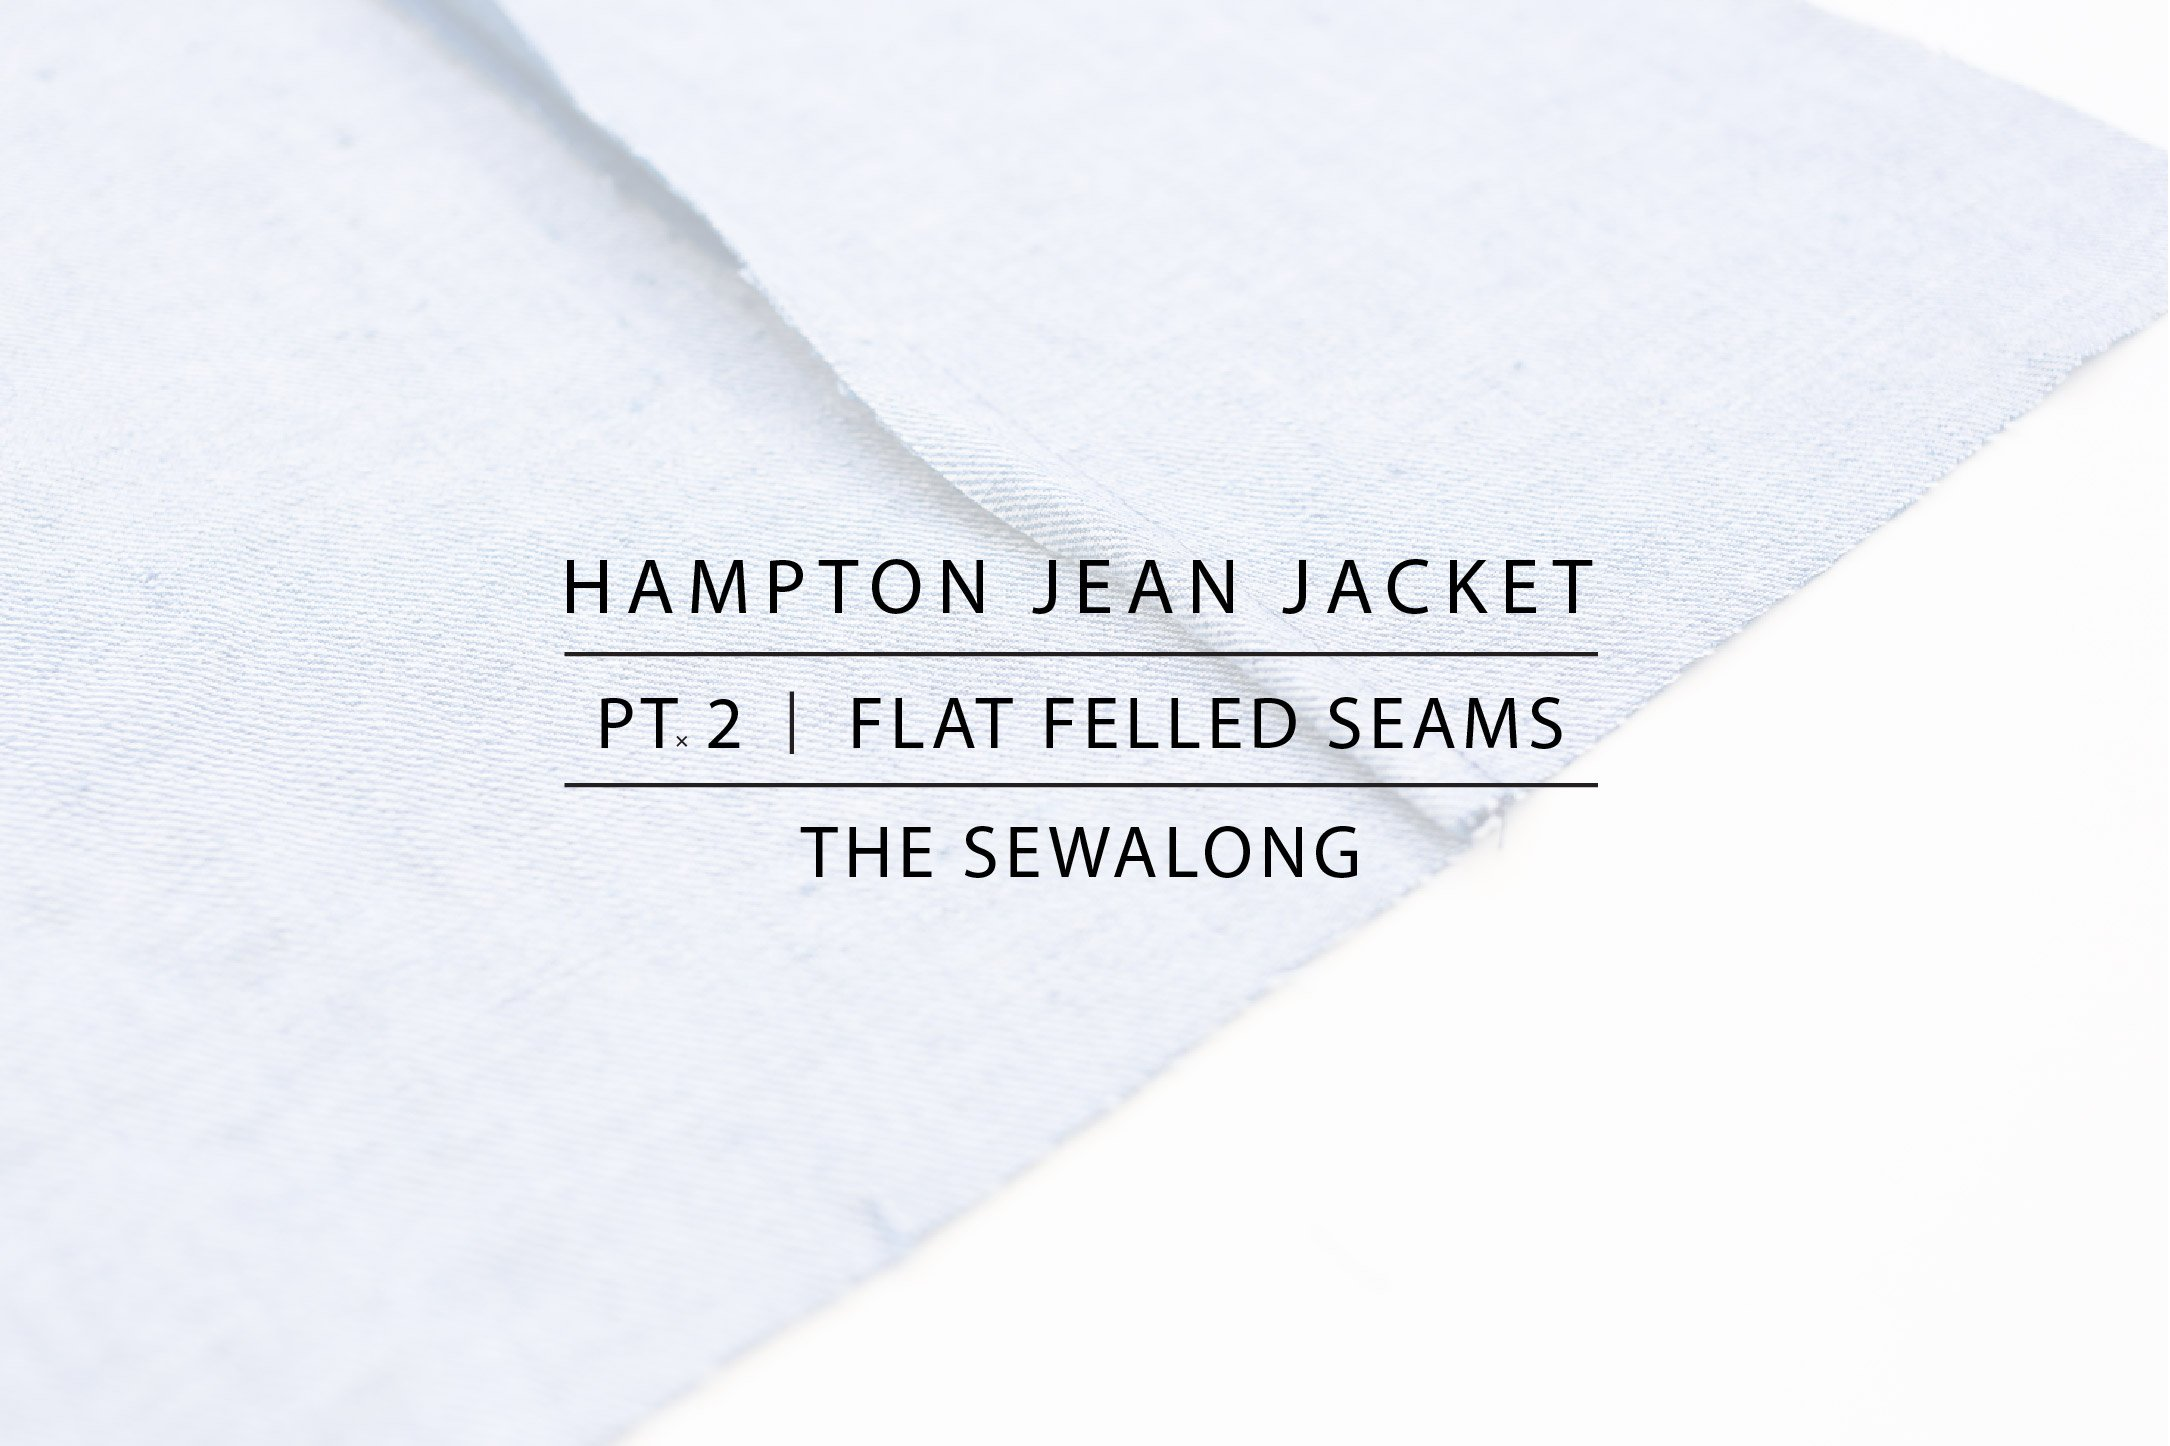 Hampton Jean Jacket Sewalong Pt. 2